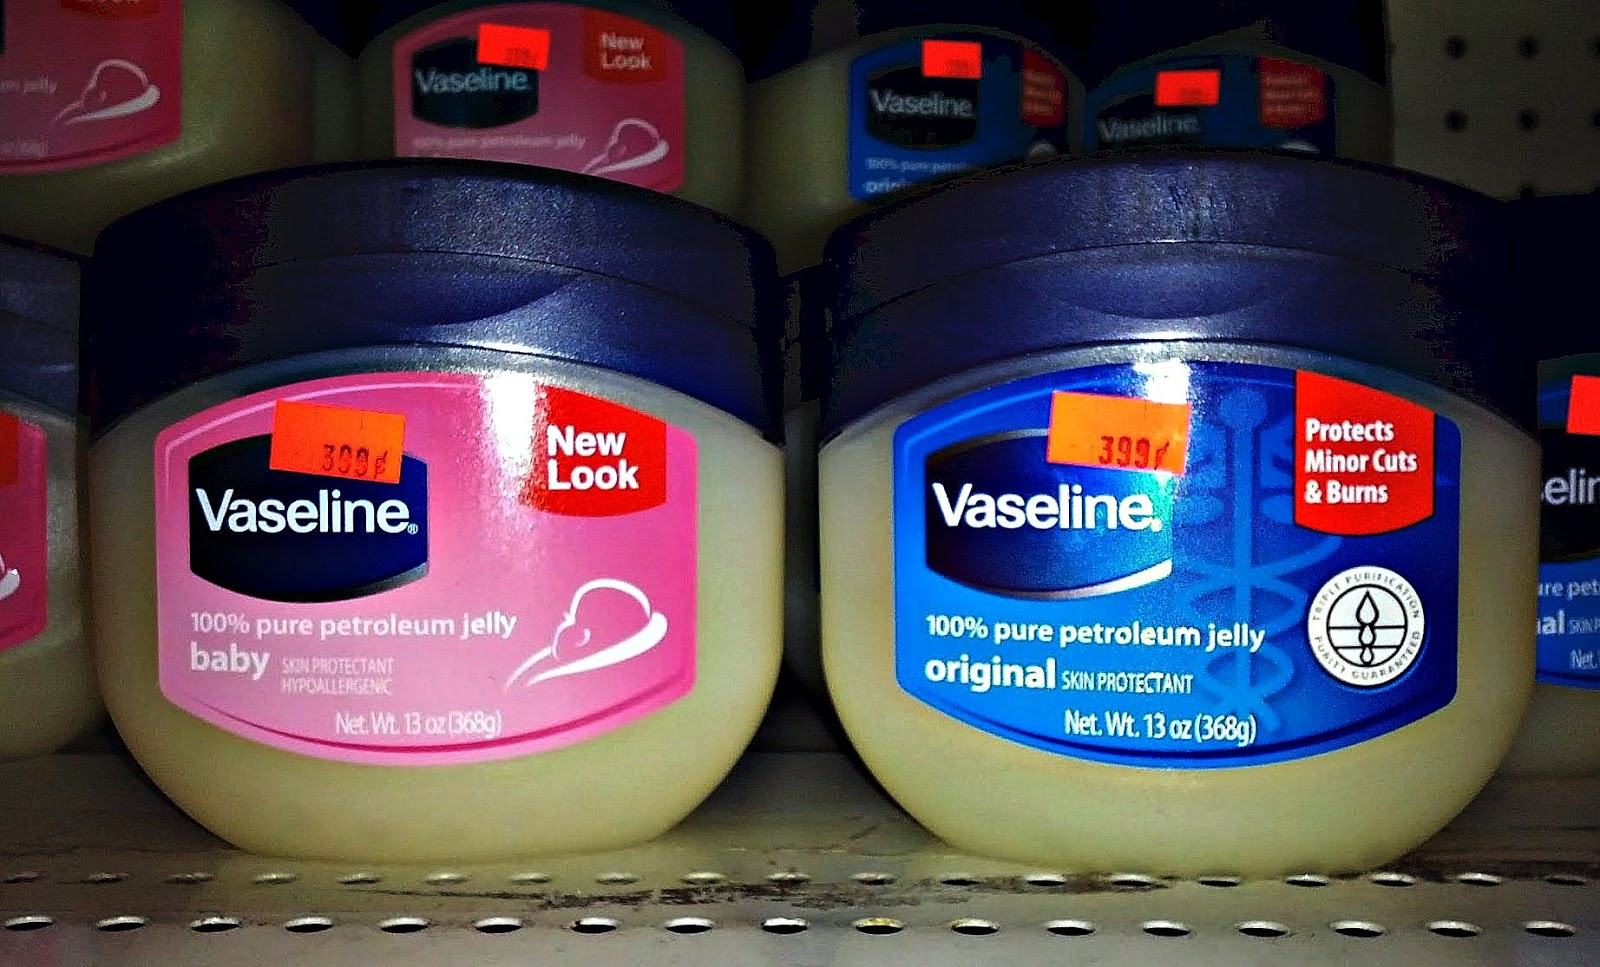 Vaseline Nursery Jelly All About Petroleum Baby 100ml Poor Marketing Stay Away From The Pink Jar White